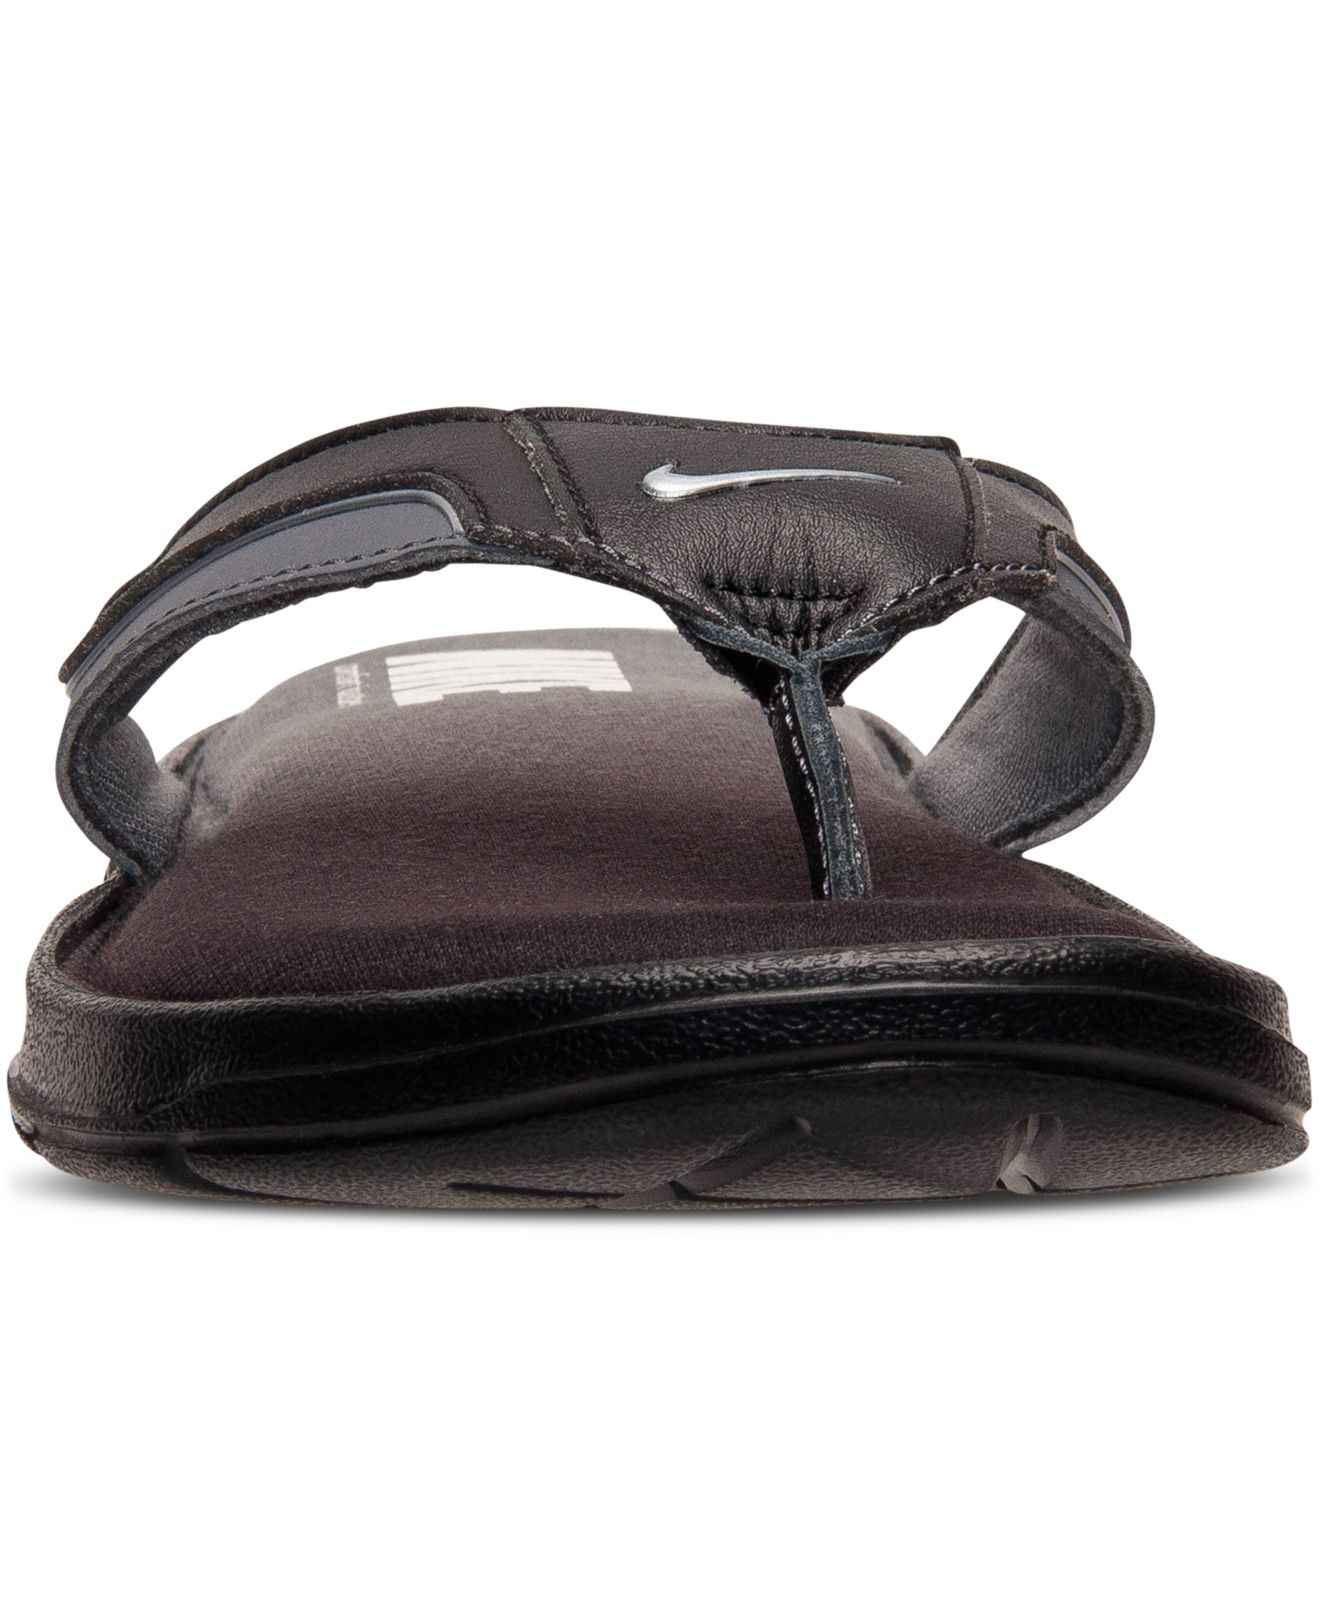 Lyst - Nike Men s Solarsoft Comfort Thong Sandals From Finish Line ... 8b1b9c402